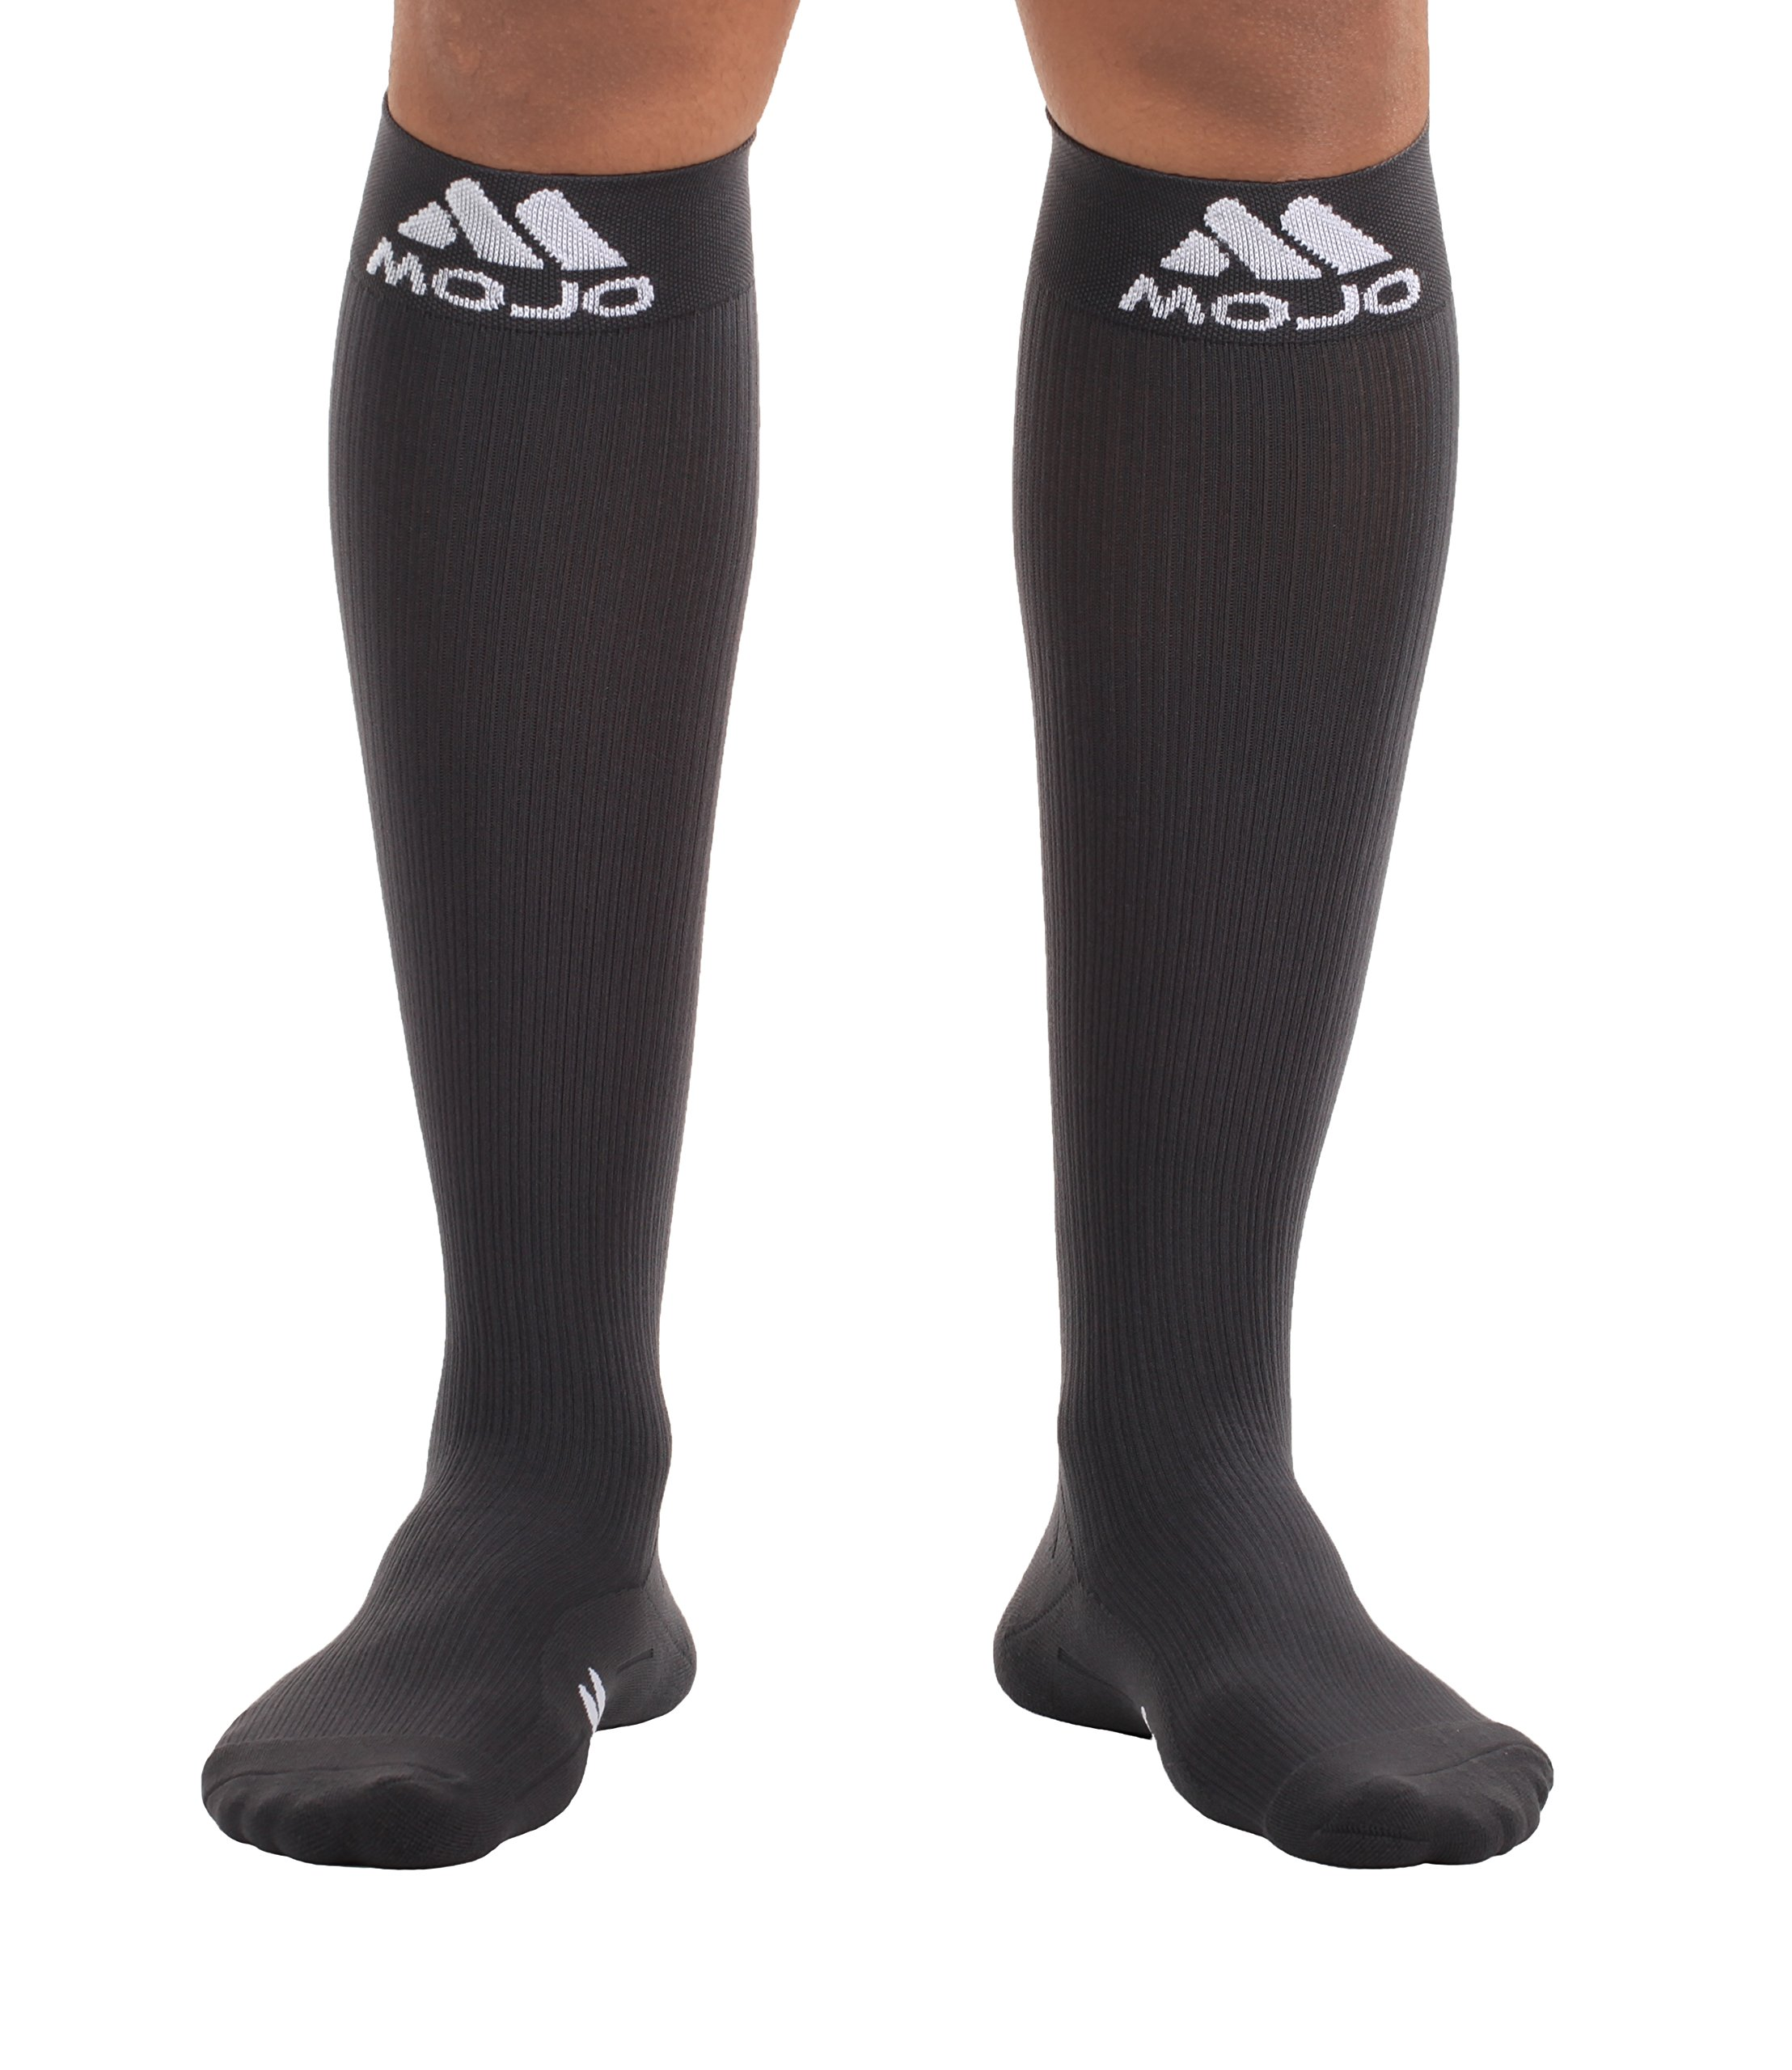 e18cdb00ab Mojo Compression Socks - Comfortable Coolmax Material for Recovery &  Performance. Medical Support Socks -